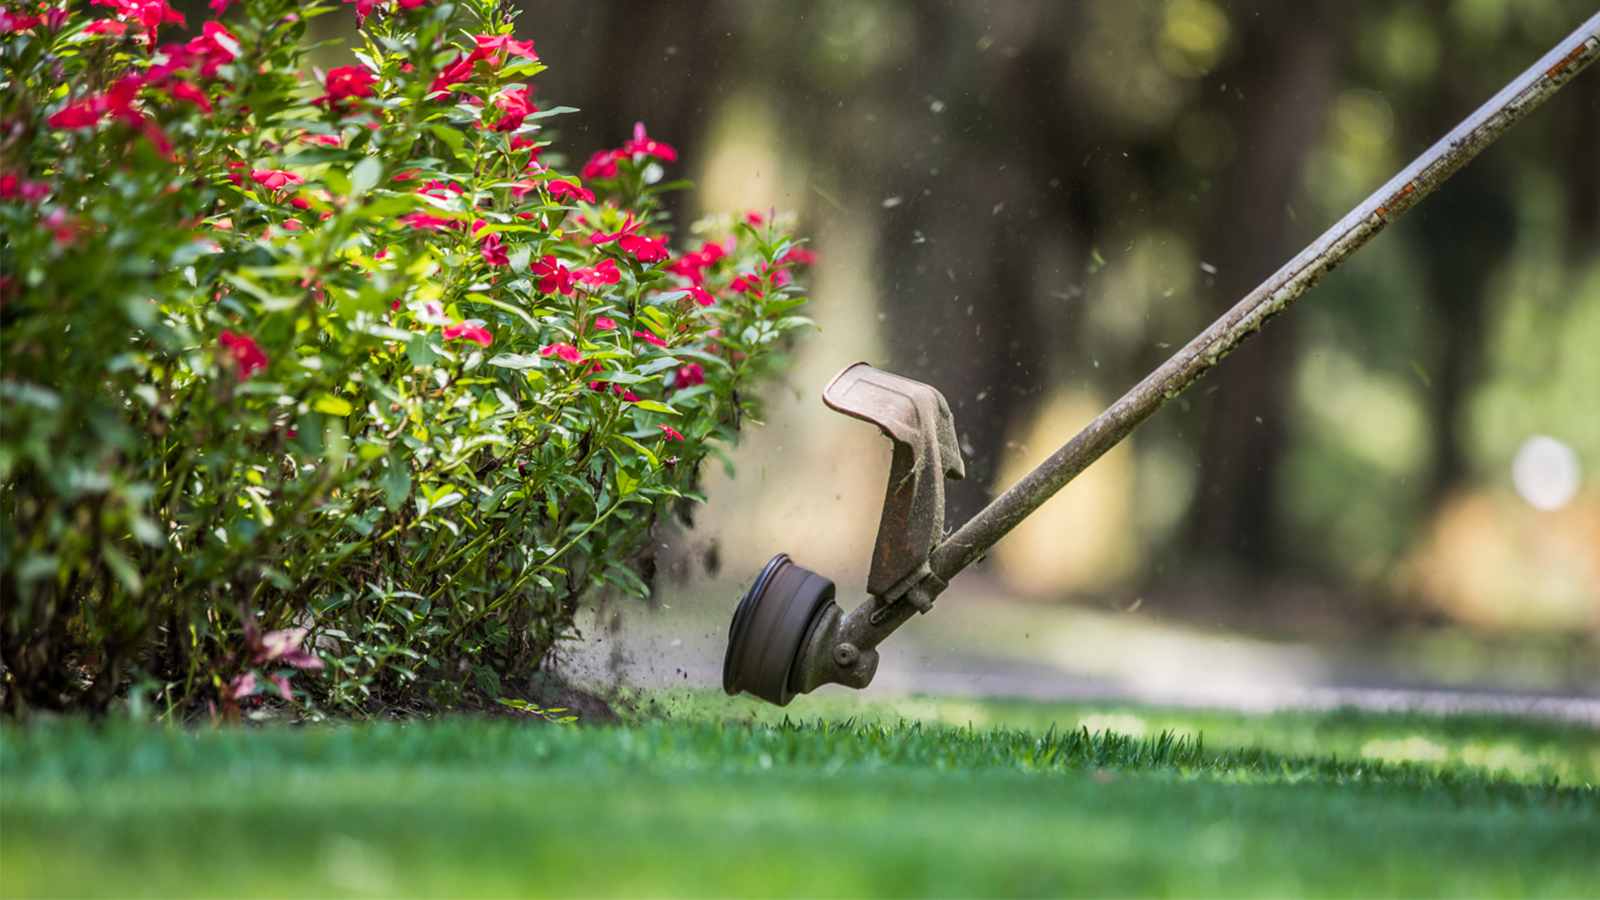 Lawn Maintenance Services in South Carolina 5